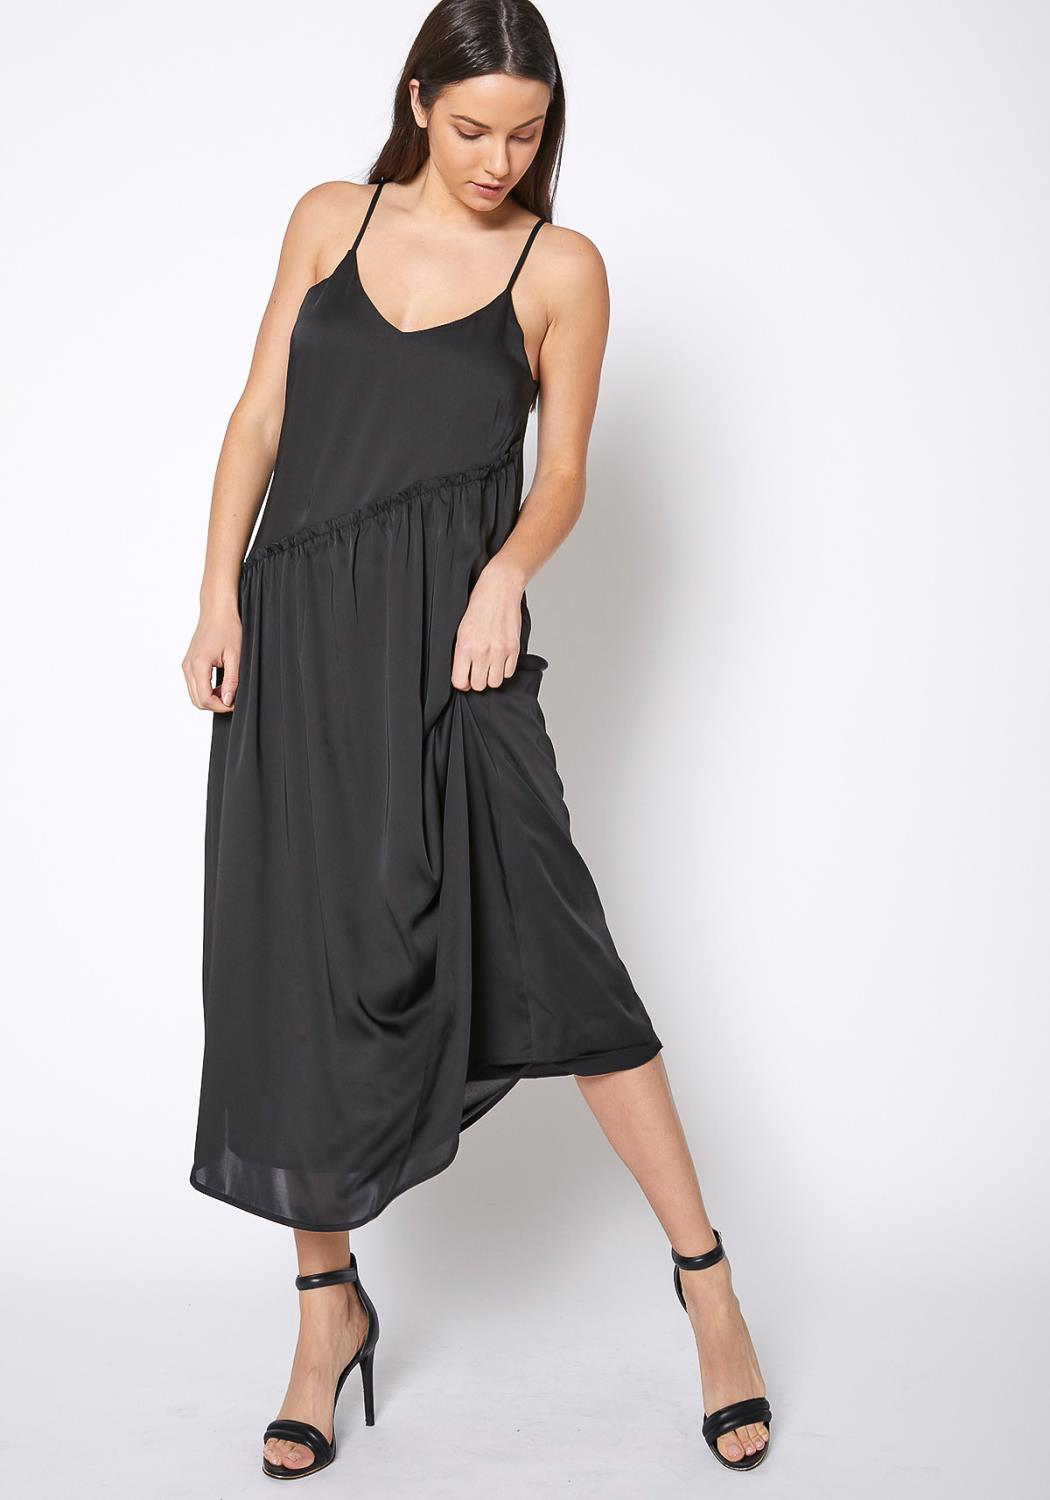 RO & DE Diagonal Patched Spaghetti Strap Maxi Dress